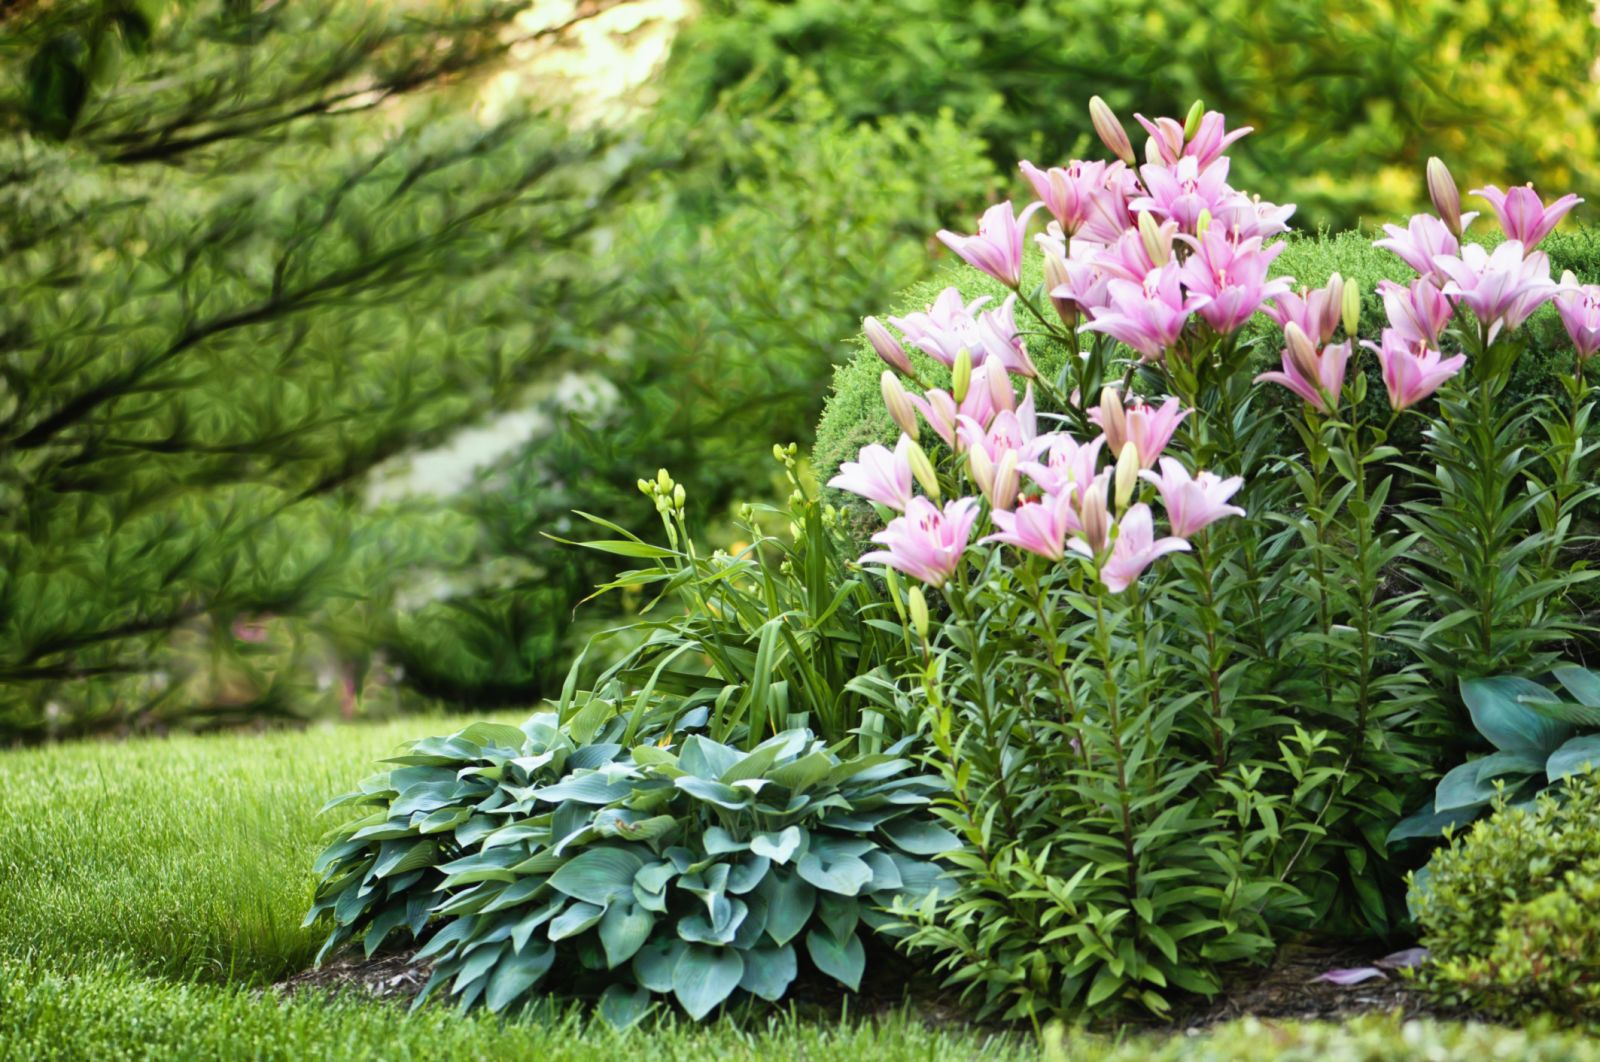 8 Surprising Things You Didn't Know About Lilies  - Veranda.com